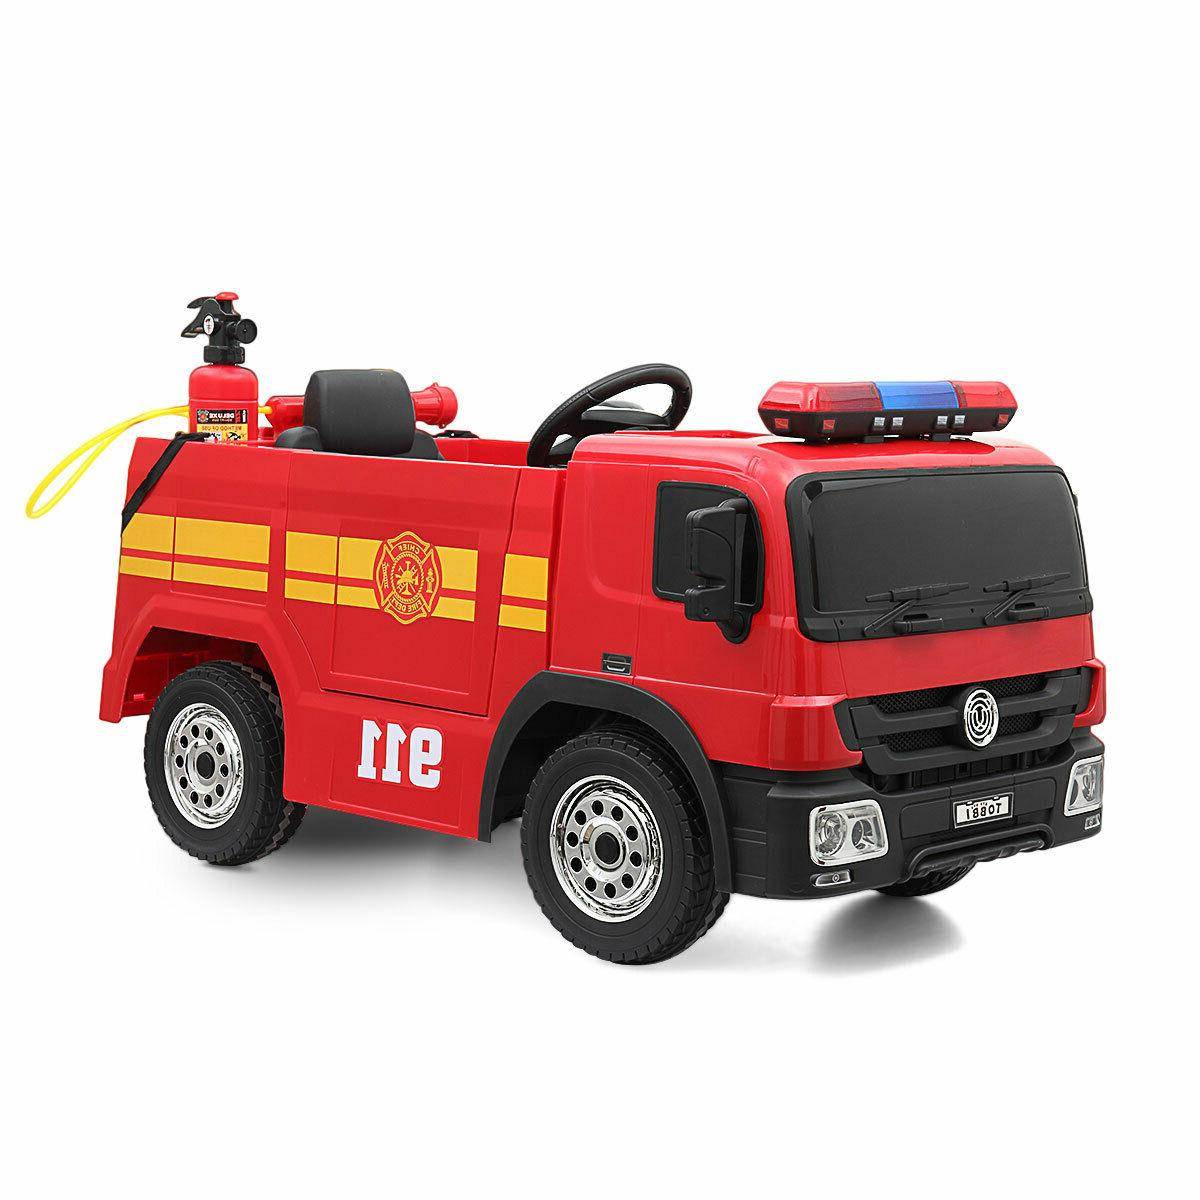 Red Electric Fire Truck Kids On Car Child Play Toy w/ Control